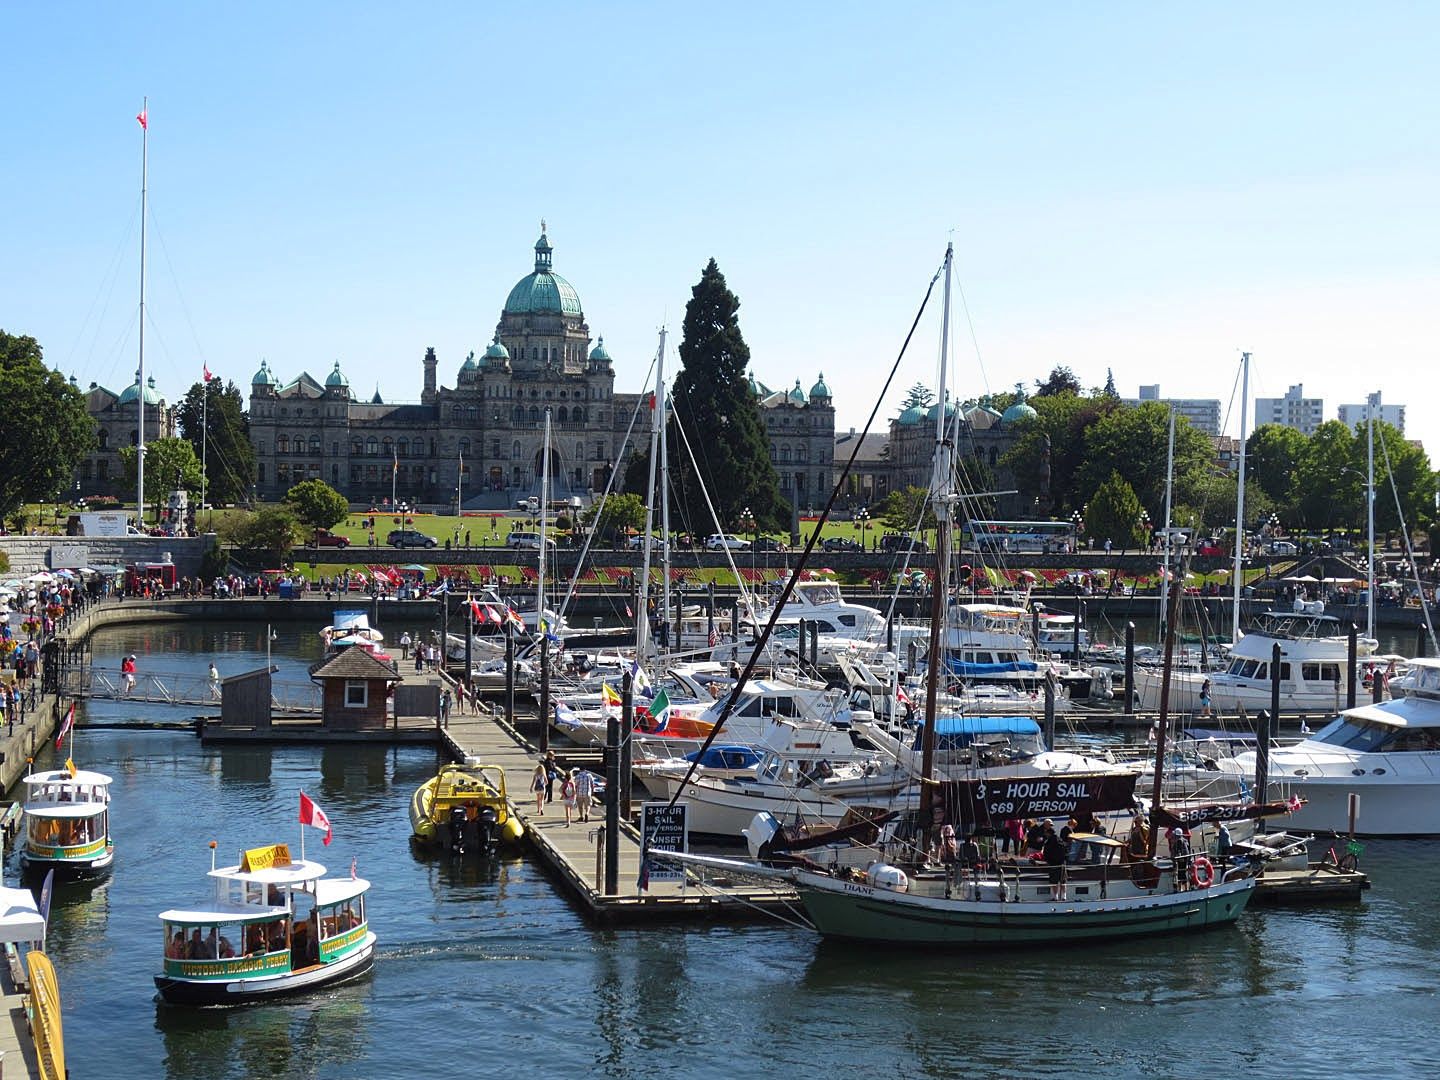 Boats are moored in the inner harbor, downtown Victoria, BC